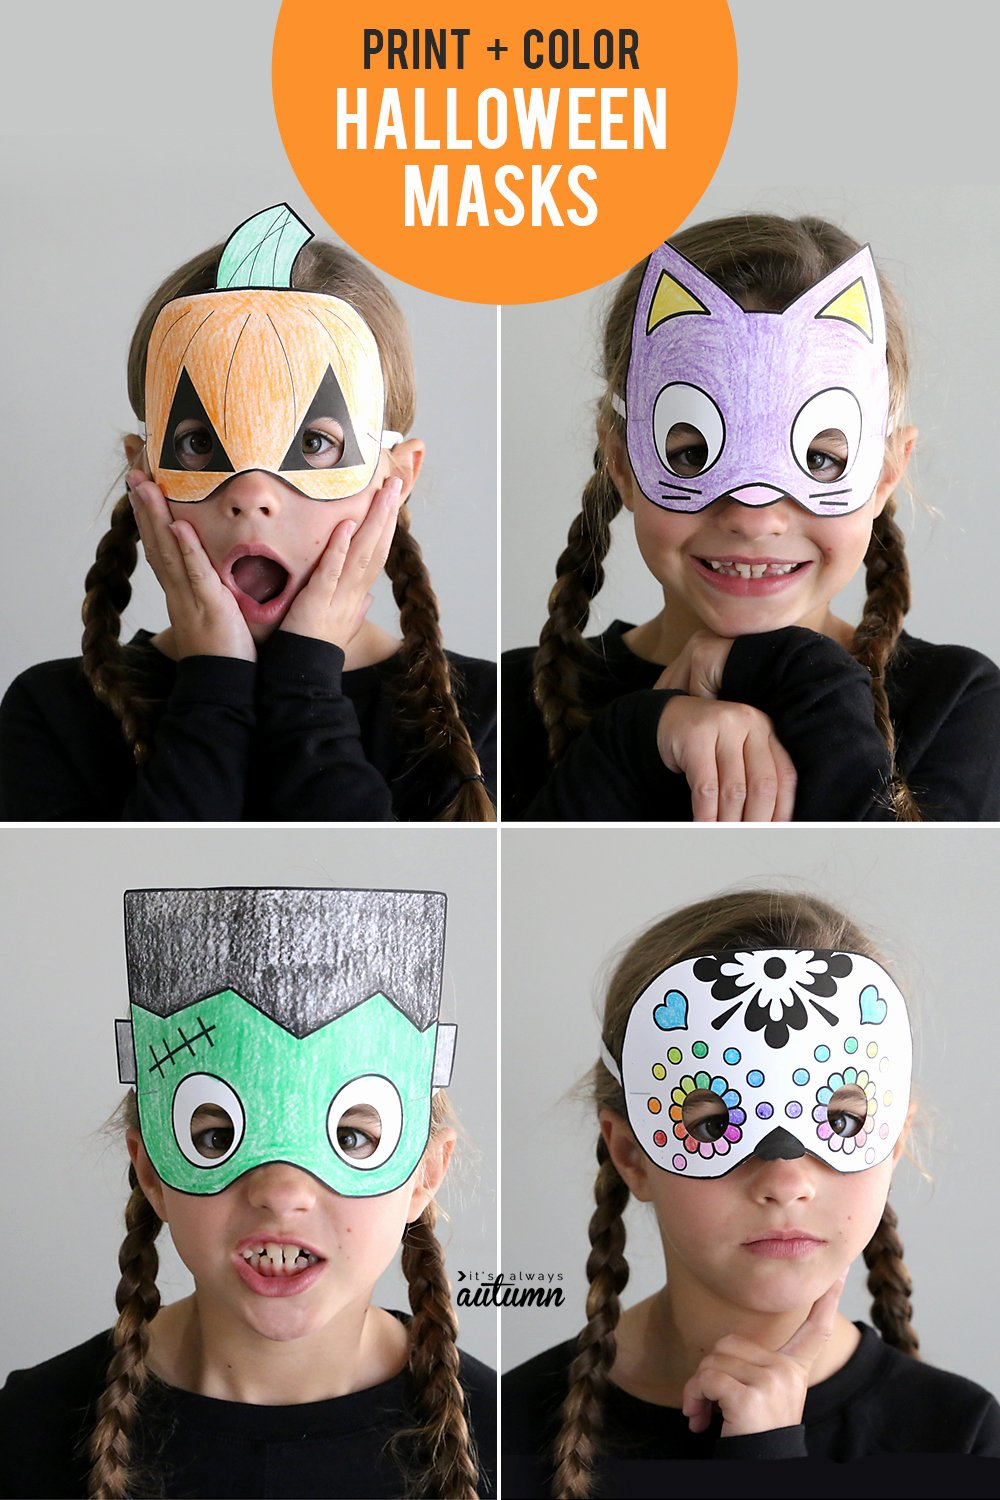 Scary Masks for Kids Beautiful Halloween Masks to Print and Color It S Always Autumn